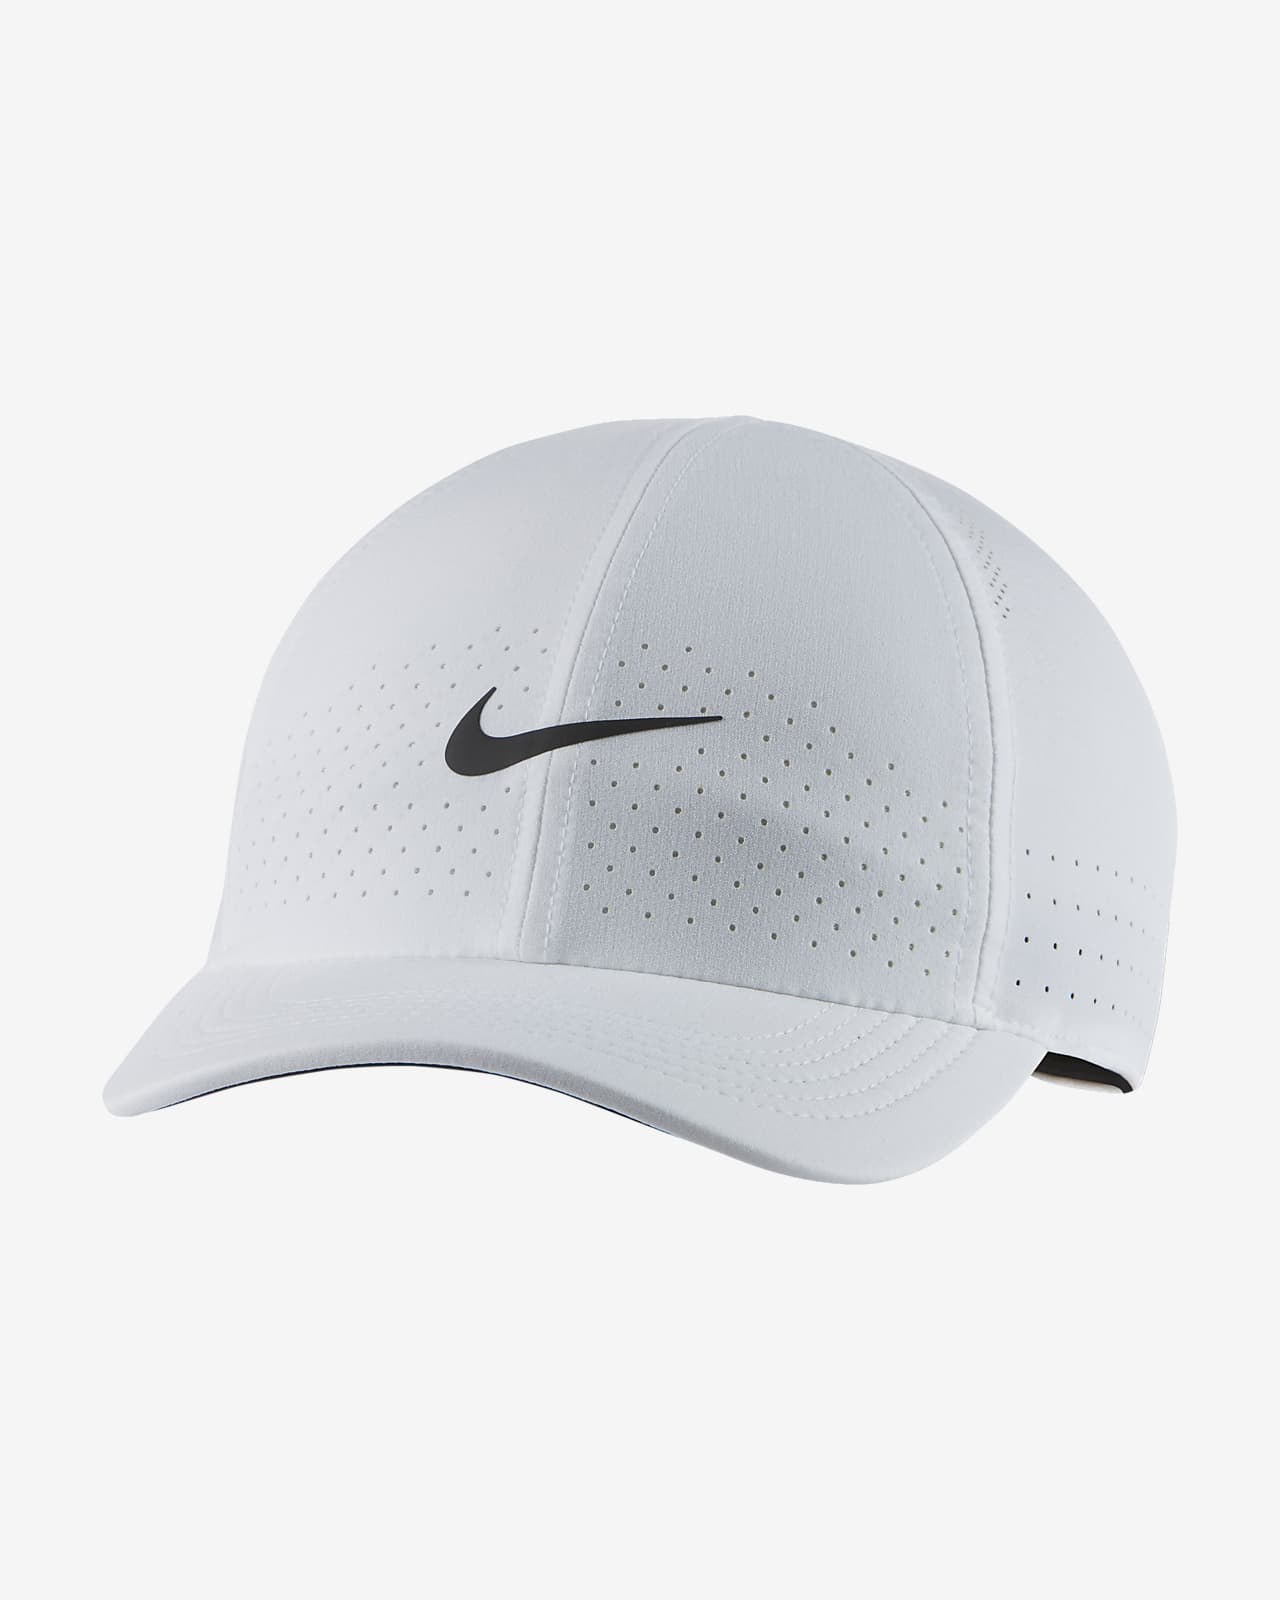 NikeCourt AeroBill Advantage Tennis-Cap